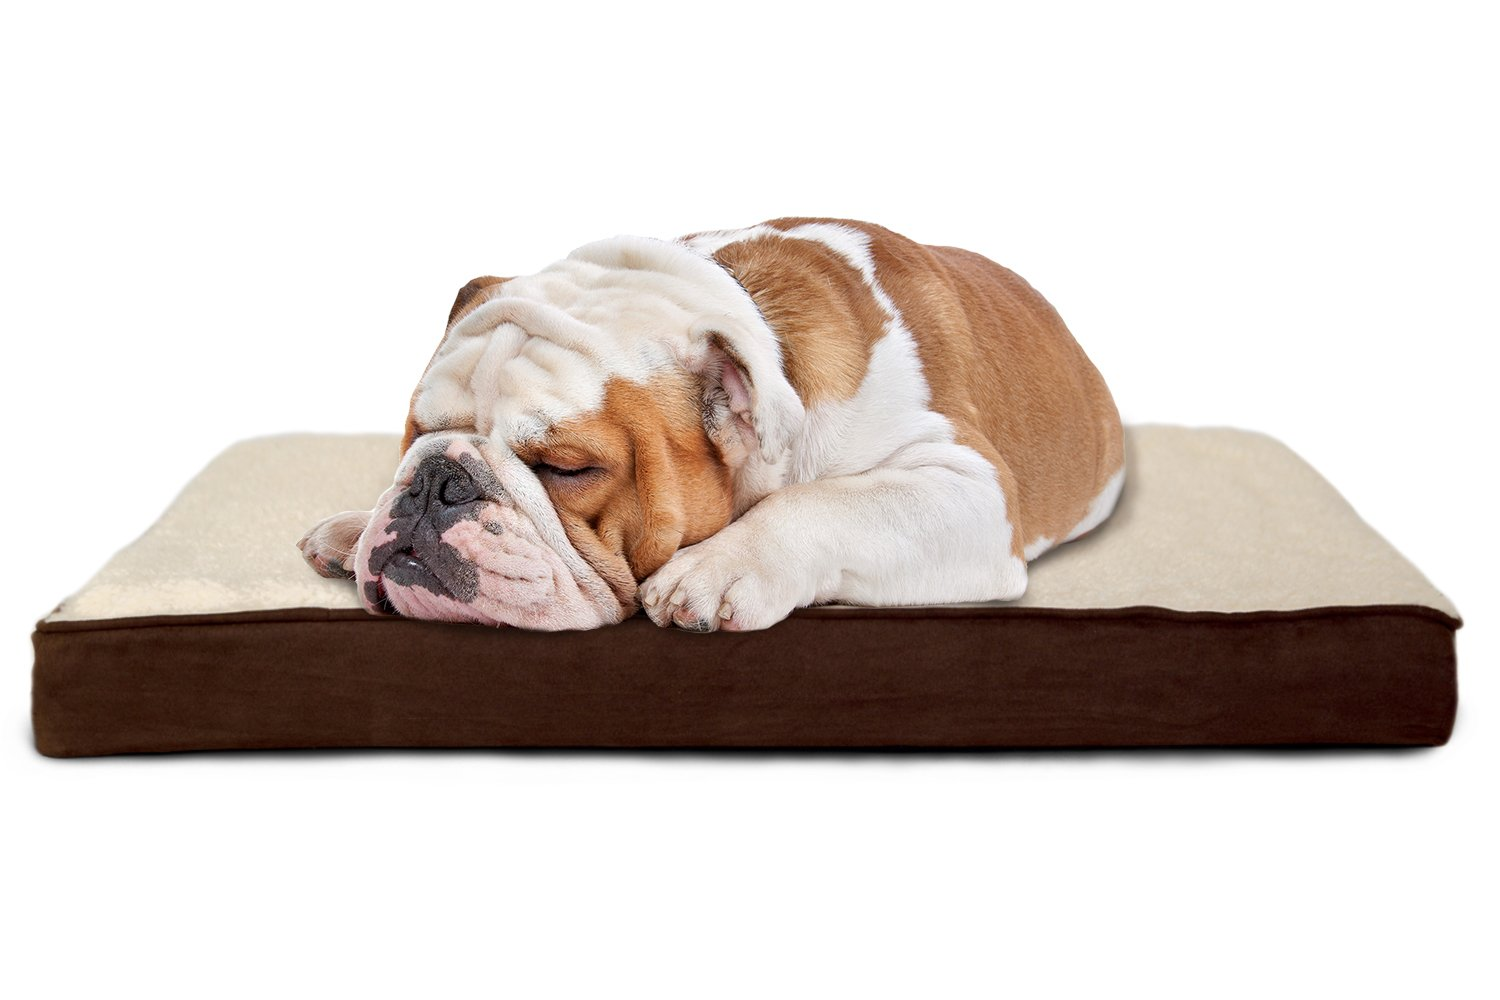 FurHaven Pet Dog Bed   Memory Foam Sherpa & Suede Mattress Pet Bed for Dogs & Cats, Espresso, Medium